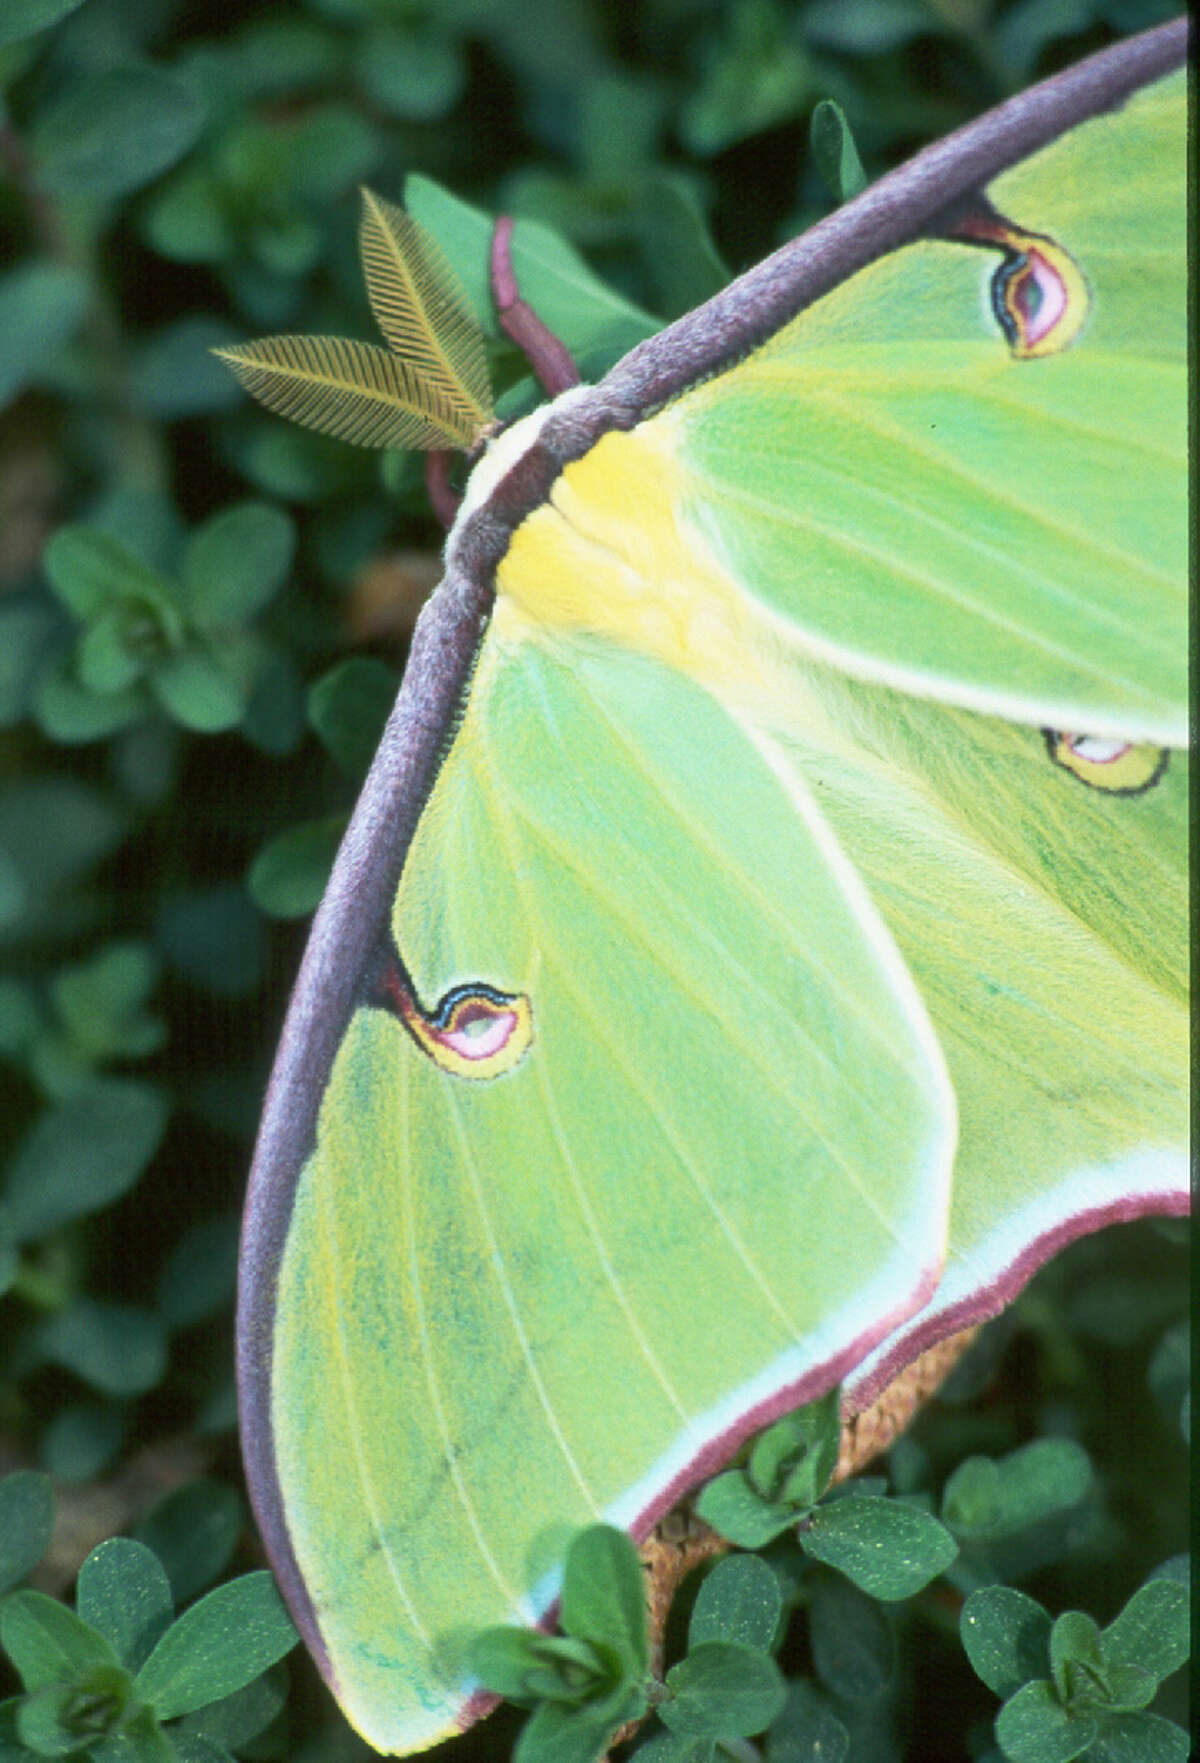 The elegant Luna moth, left, could accurately be called a